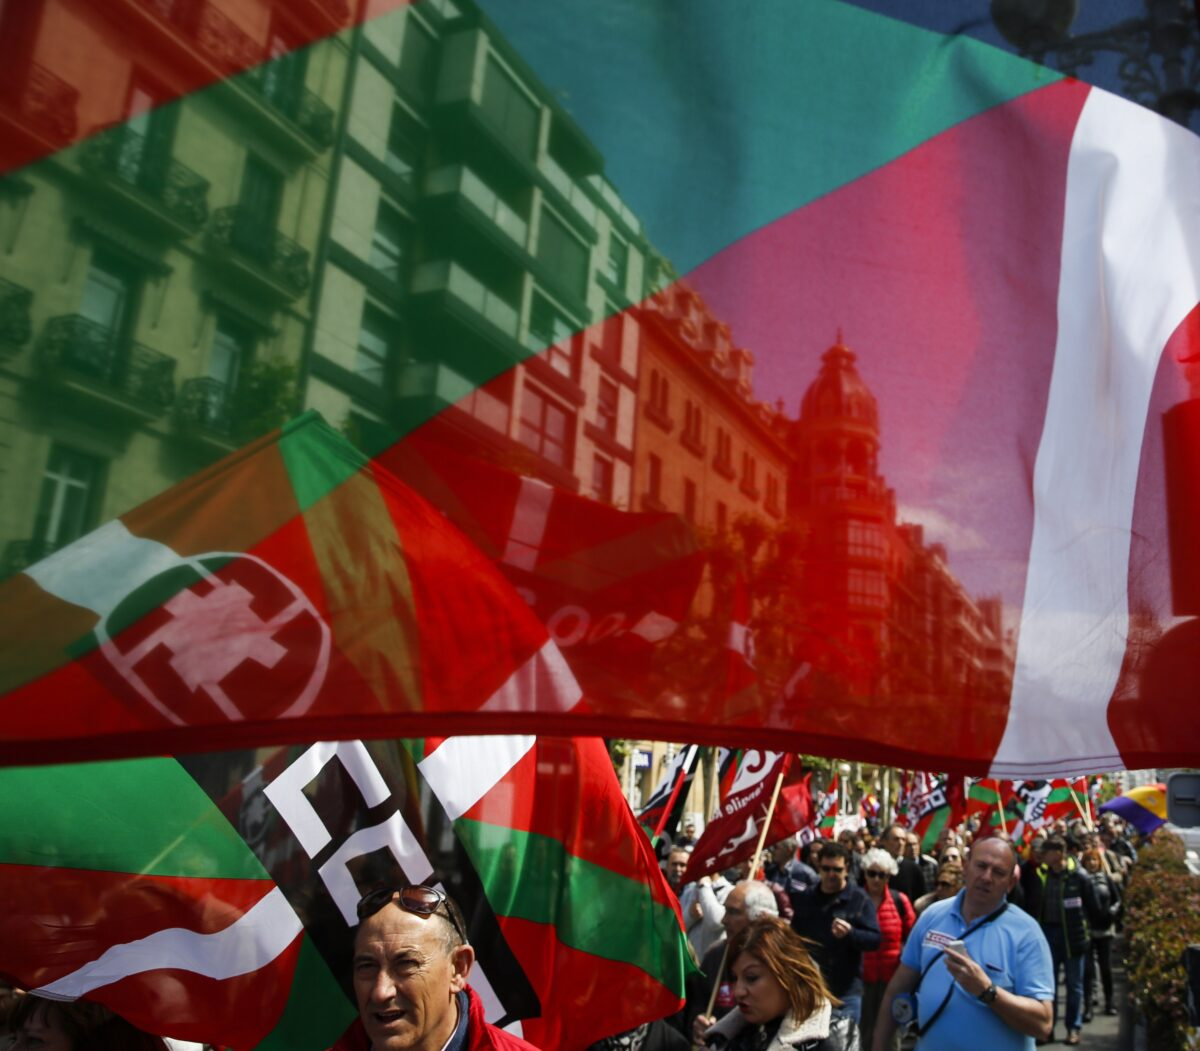 epa05938792 Workers take part in the Labour Day march held in San Sebastian, Basque Country, Spain, on 01 May 2017. Labor Day or May Day is observed all over the world on the first day of May to celebrate the economic and social achievements of workers and fight for labourers rights. EPA/Javier Etxezarreta